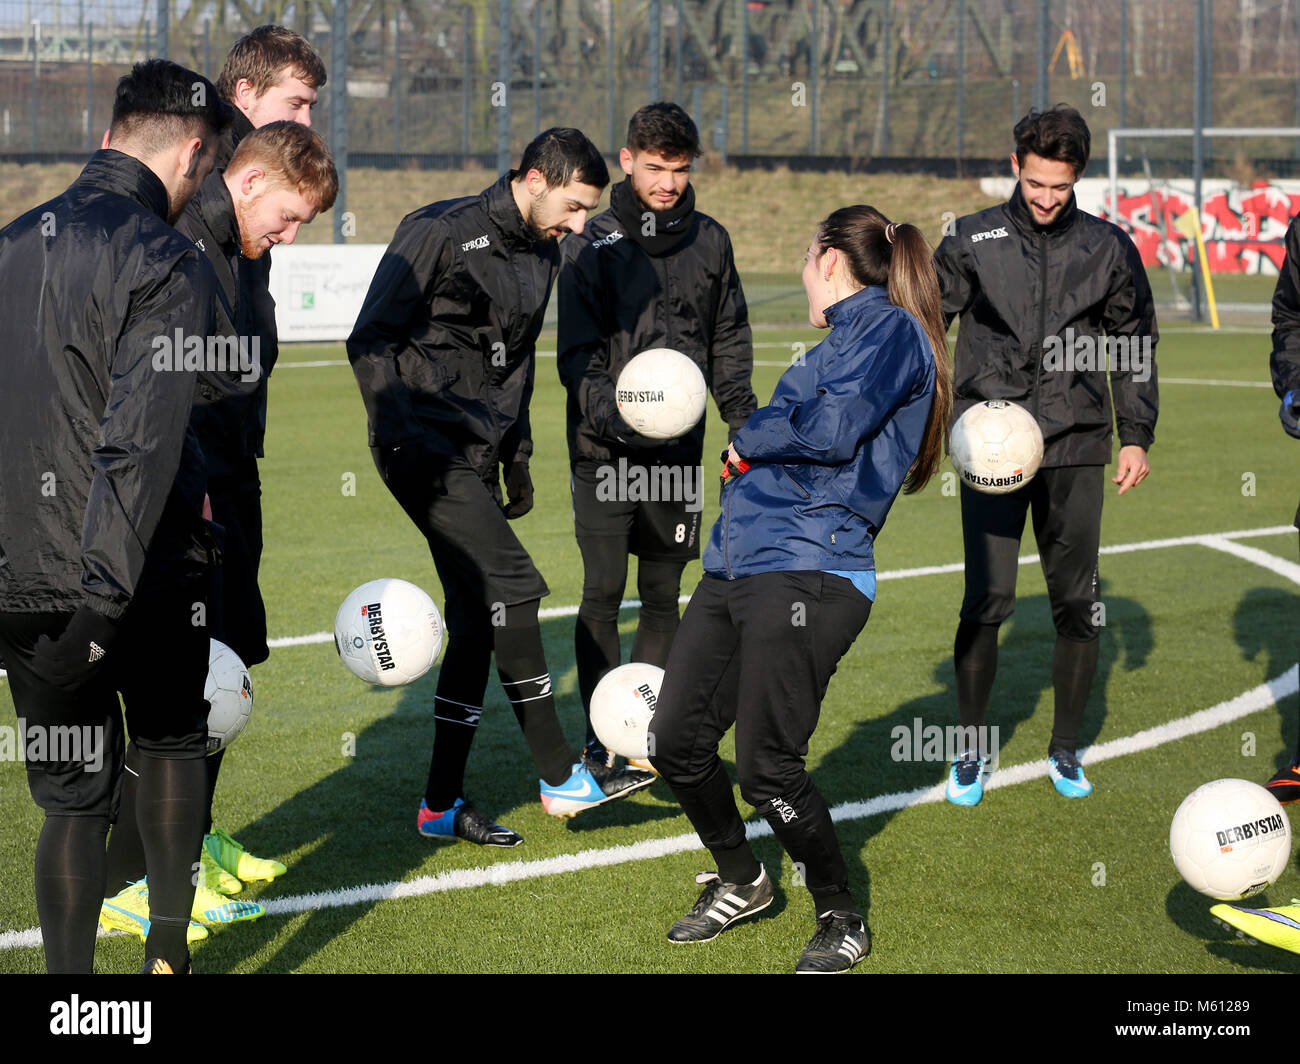 20 February 2018, Germany, Oberhausen: Duygu Erdogan (2nd R), assistant coach of soccer club Rot-Weiss Oberhausen, Stock Photo